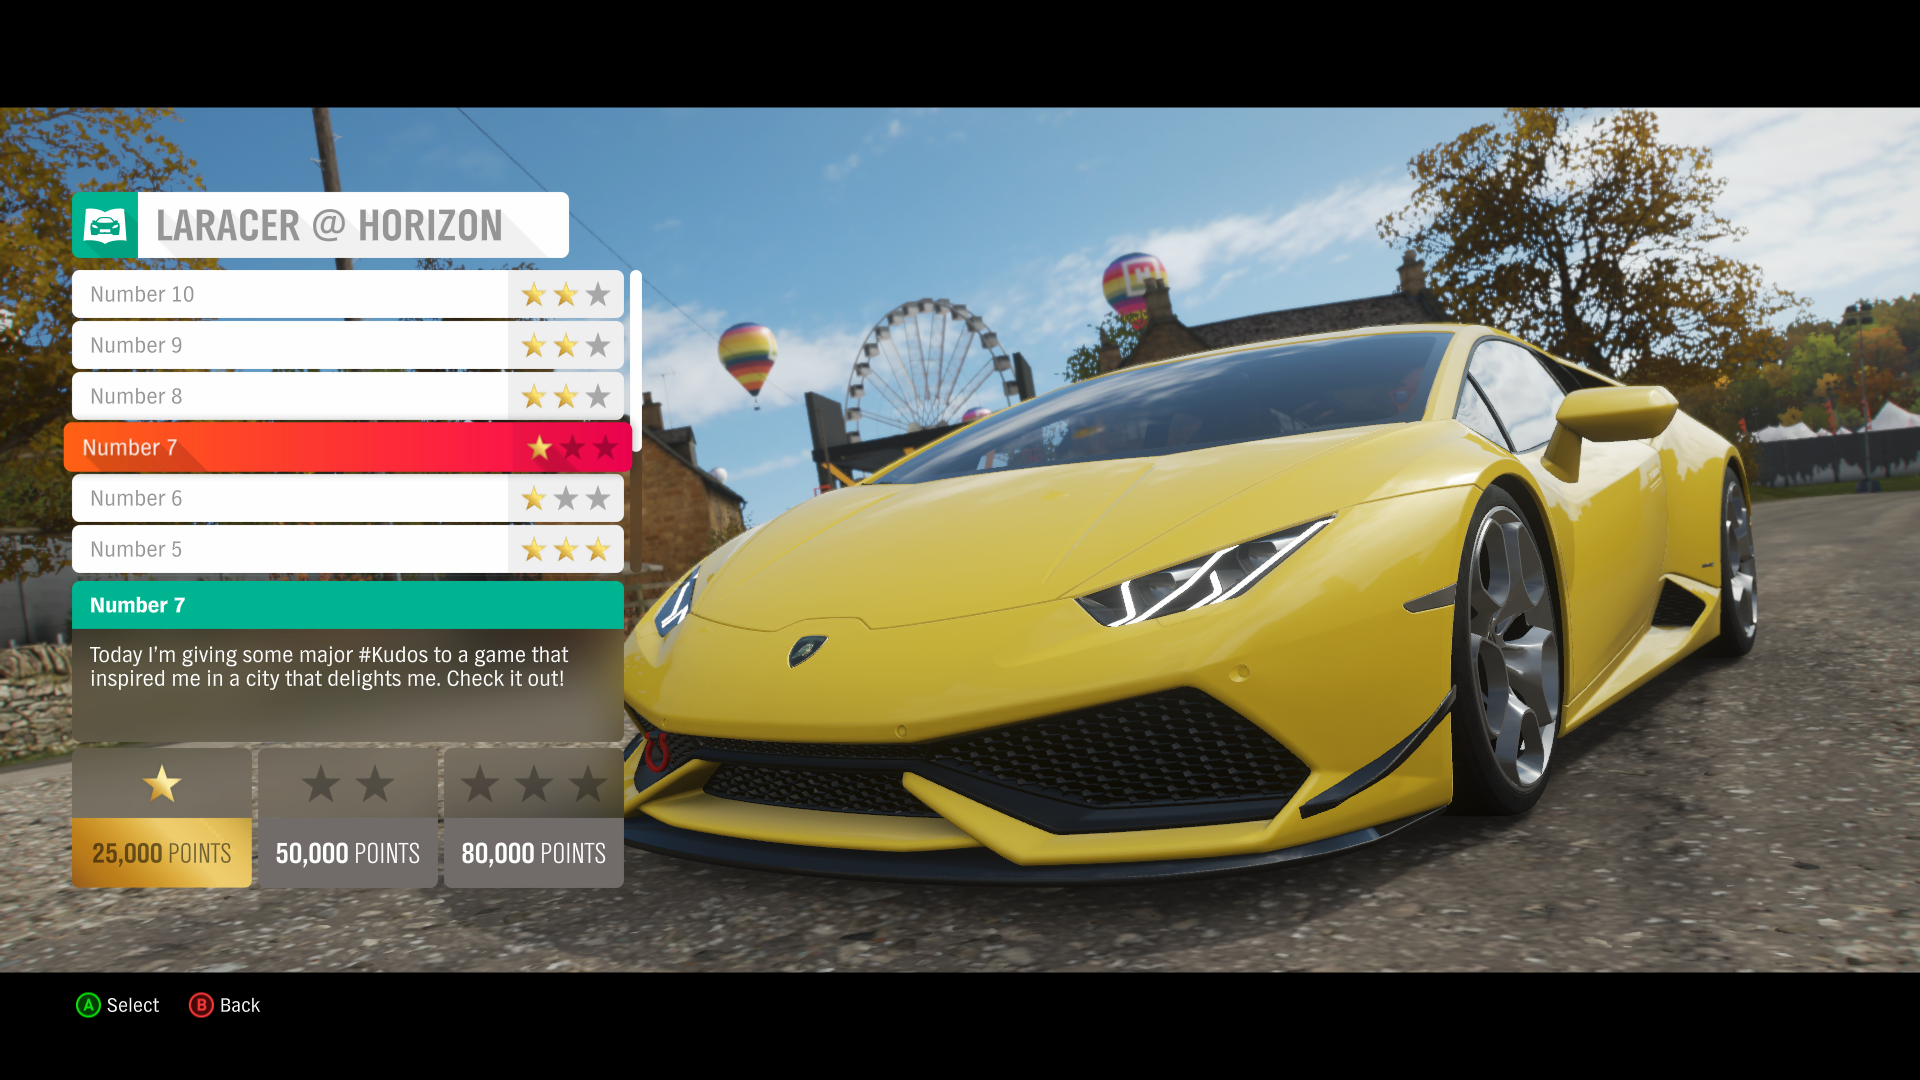 Dc5n United States Software In English Created At 2018 09 27 1814 Swag Chandelier Ebay Electronics Cars Fashion Collectibles Forza Horizon 4s Best Set Of Missions Pay Tribute To The Great Racing Games Past Here Are It Pays And Times Scores Youll